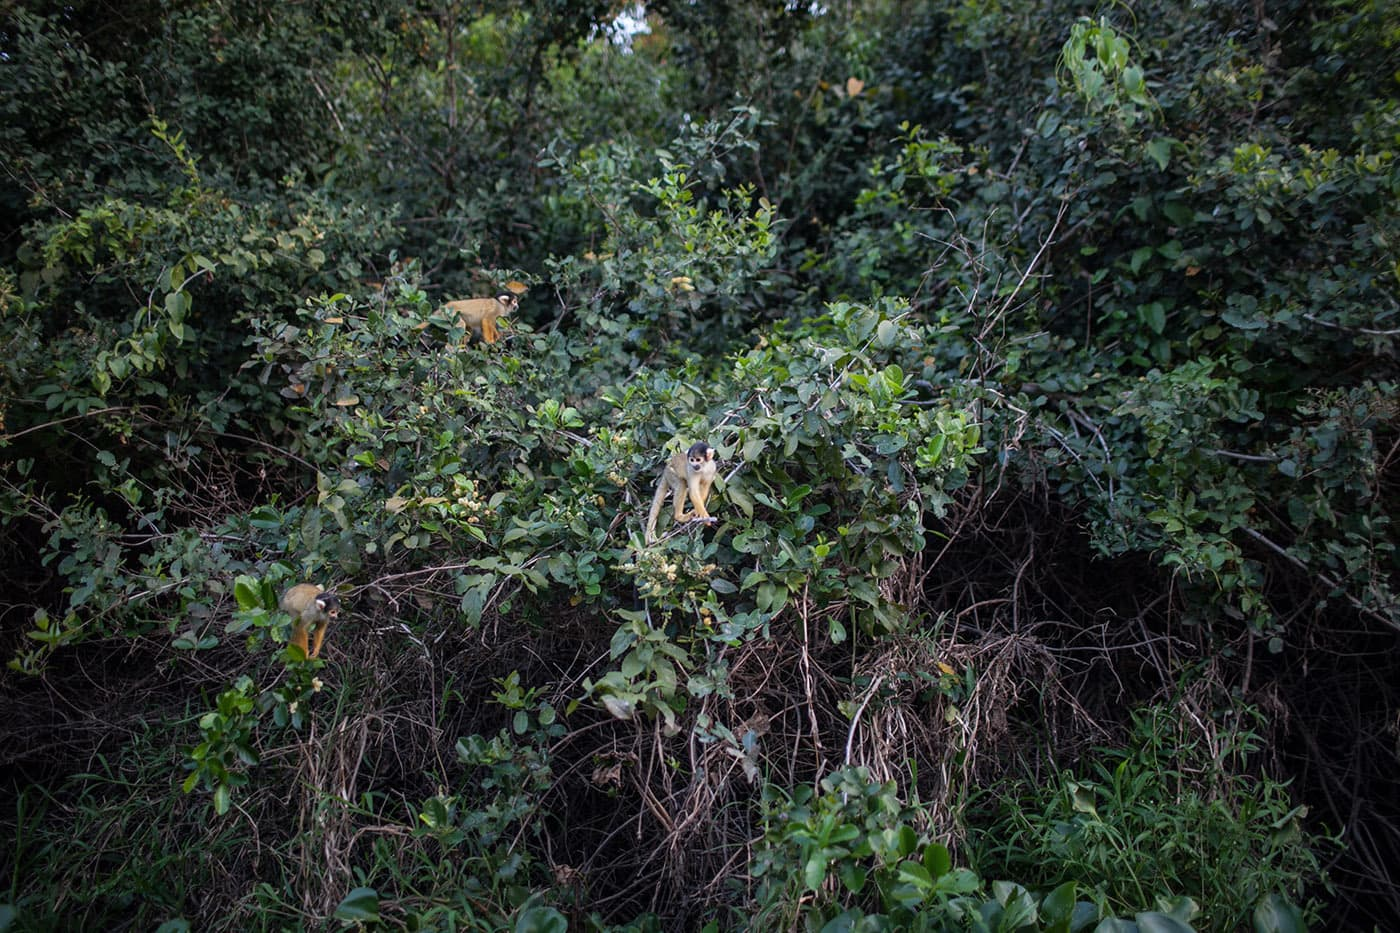 Monkey - The Pampas in the Bolivian Amazon